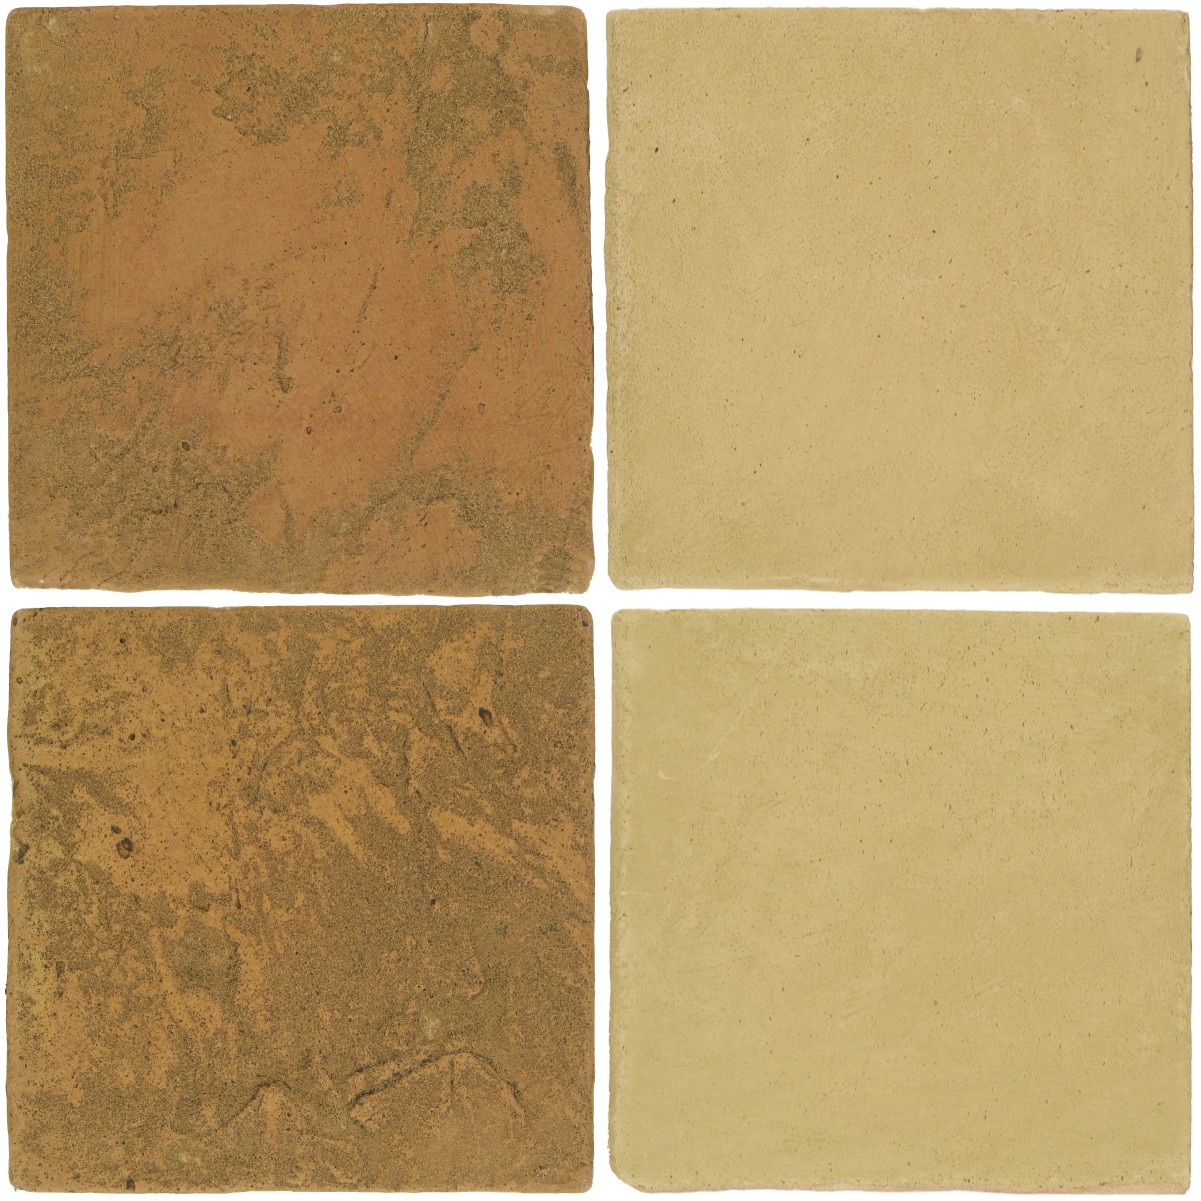 Pedralbes Antique Terracotta  2 Color Combinations  VTG-PSSW Siena Wheat + OHS-PGGW Golden W.